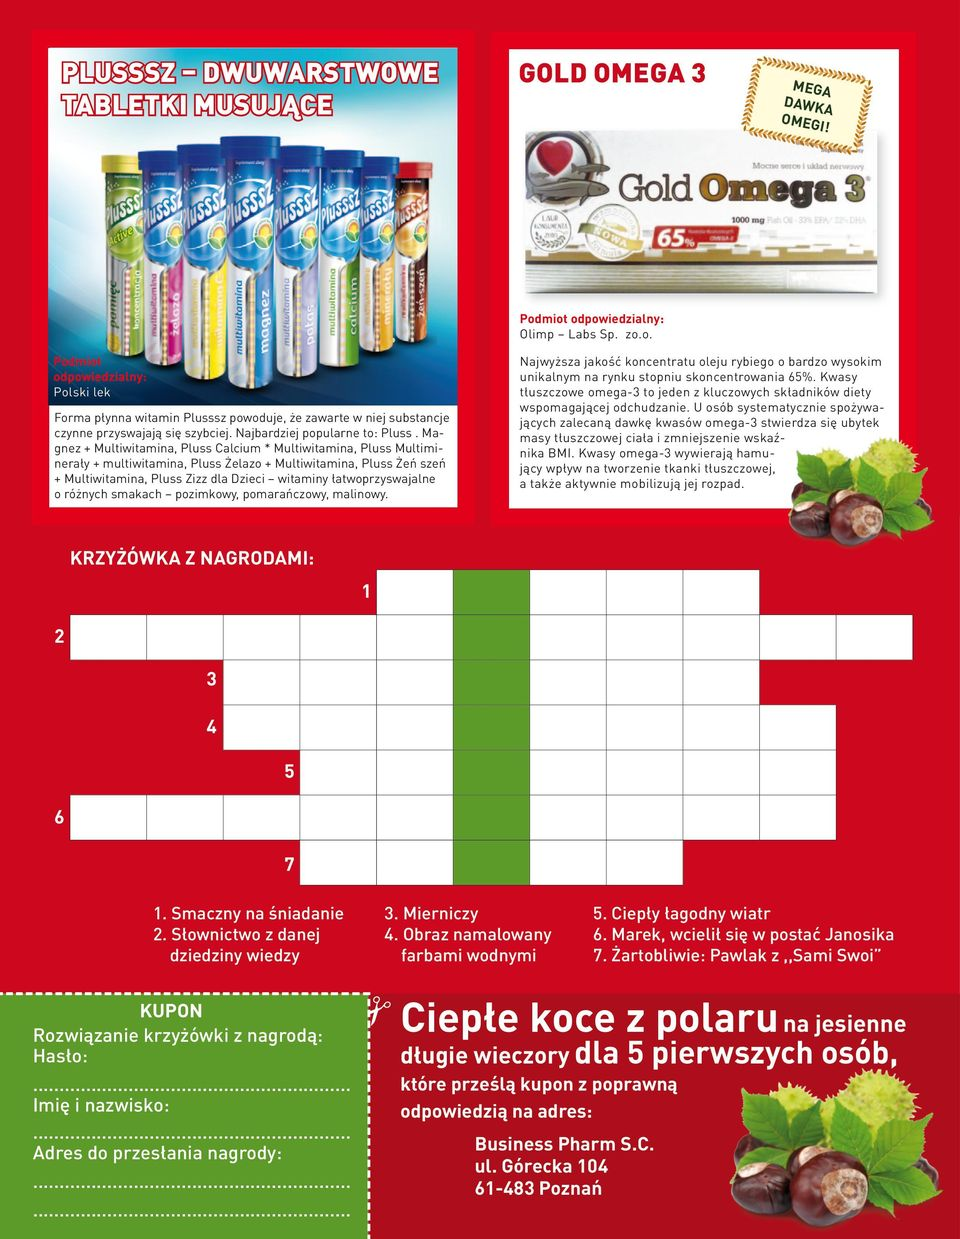 Magnez + Multiwitamina, Pluss Calcium * Multiwitamina, Pluss Multiminerały + multiwitamina, Pluss Żelazo + Multiwitamina, Pluss Żeń szeń + Multiwitamina, Pluss Zizz dla Dzieci witaminy